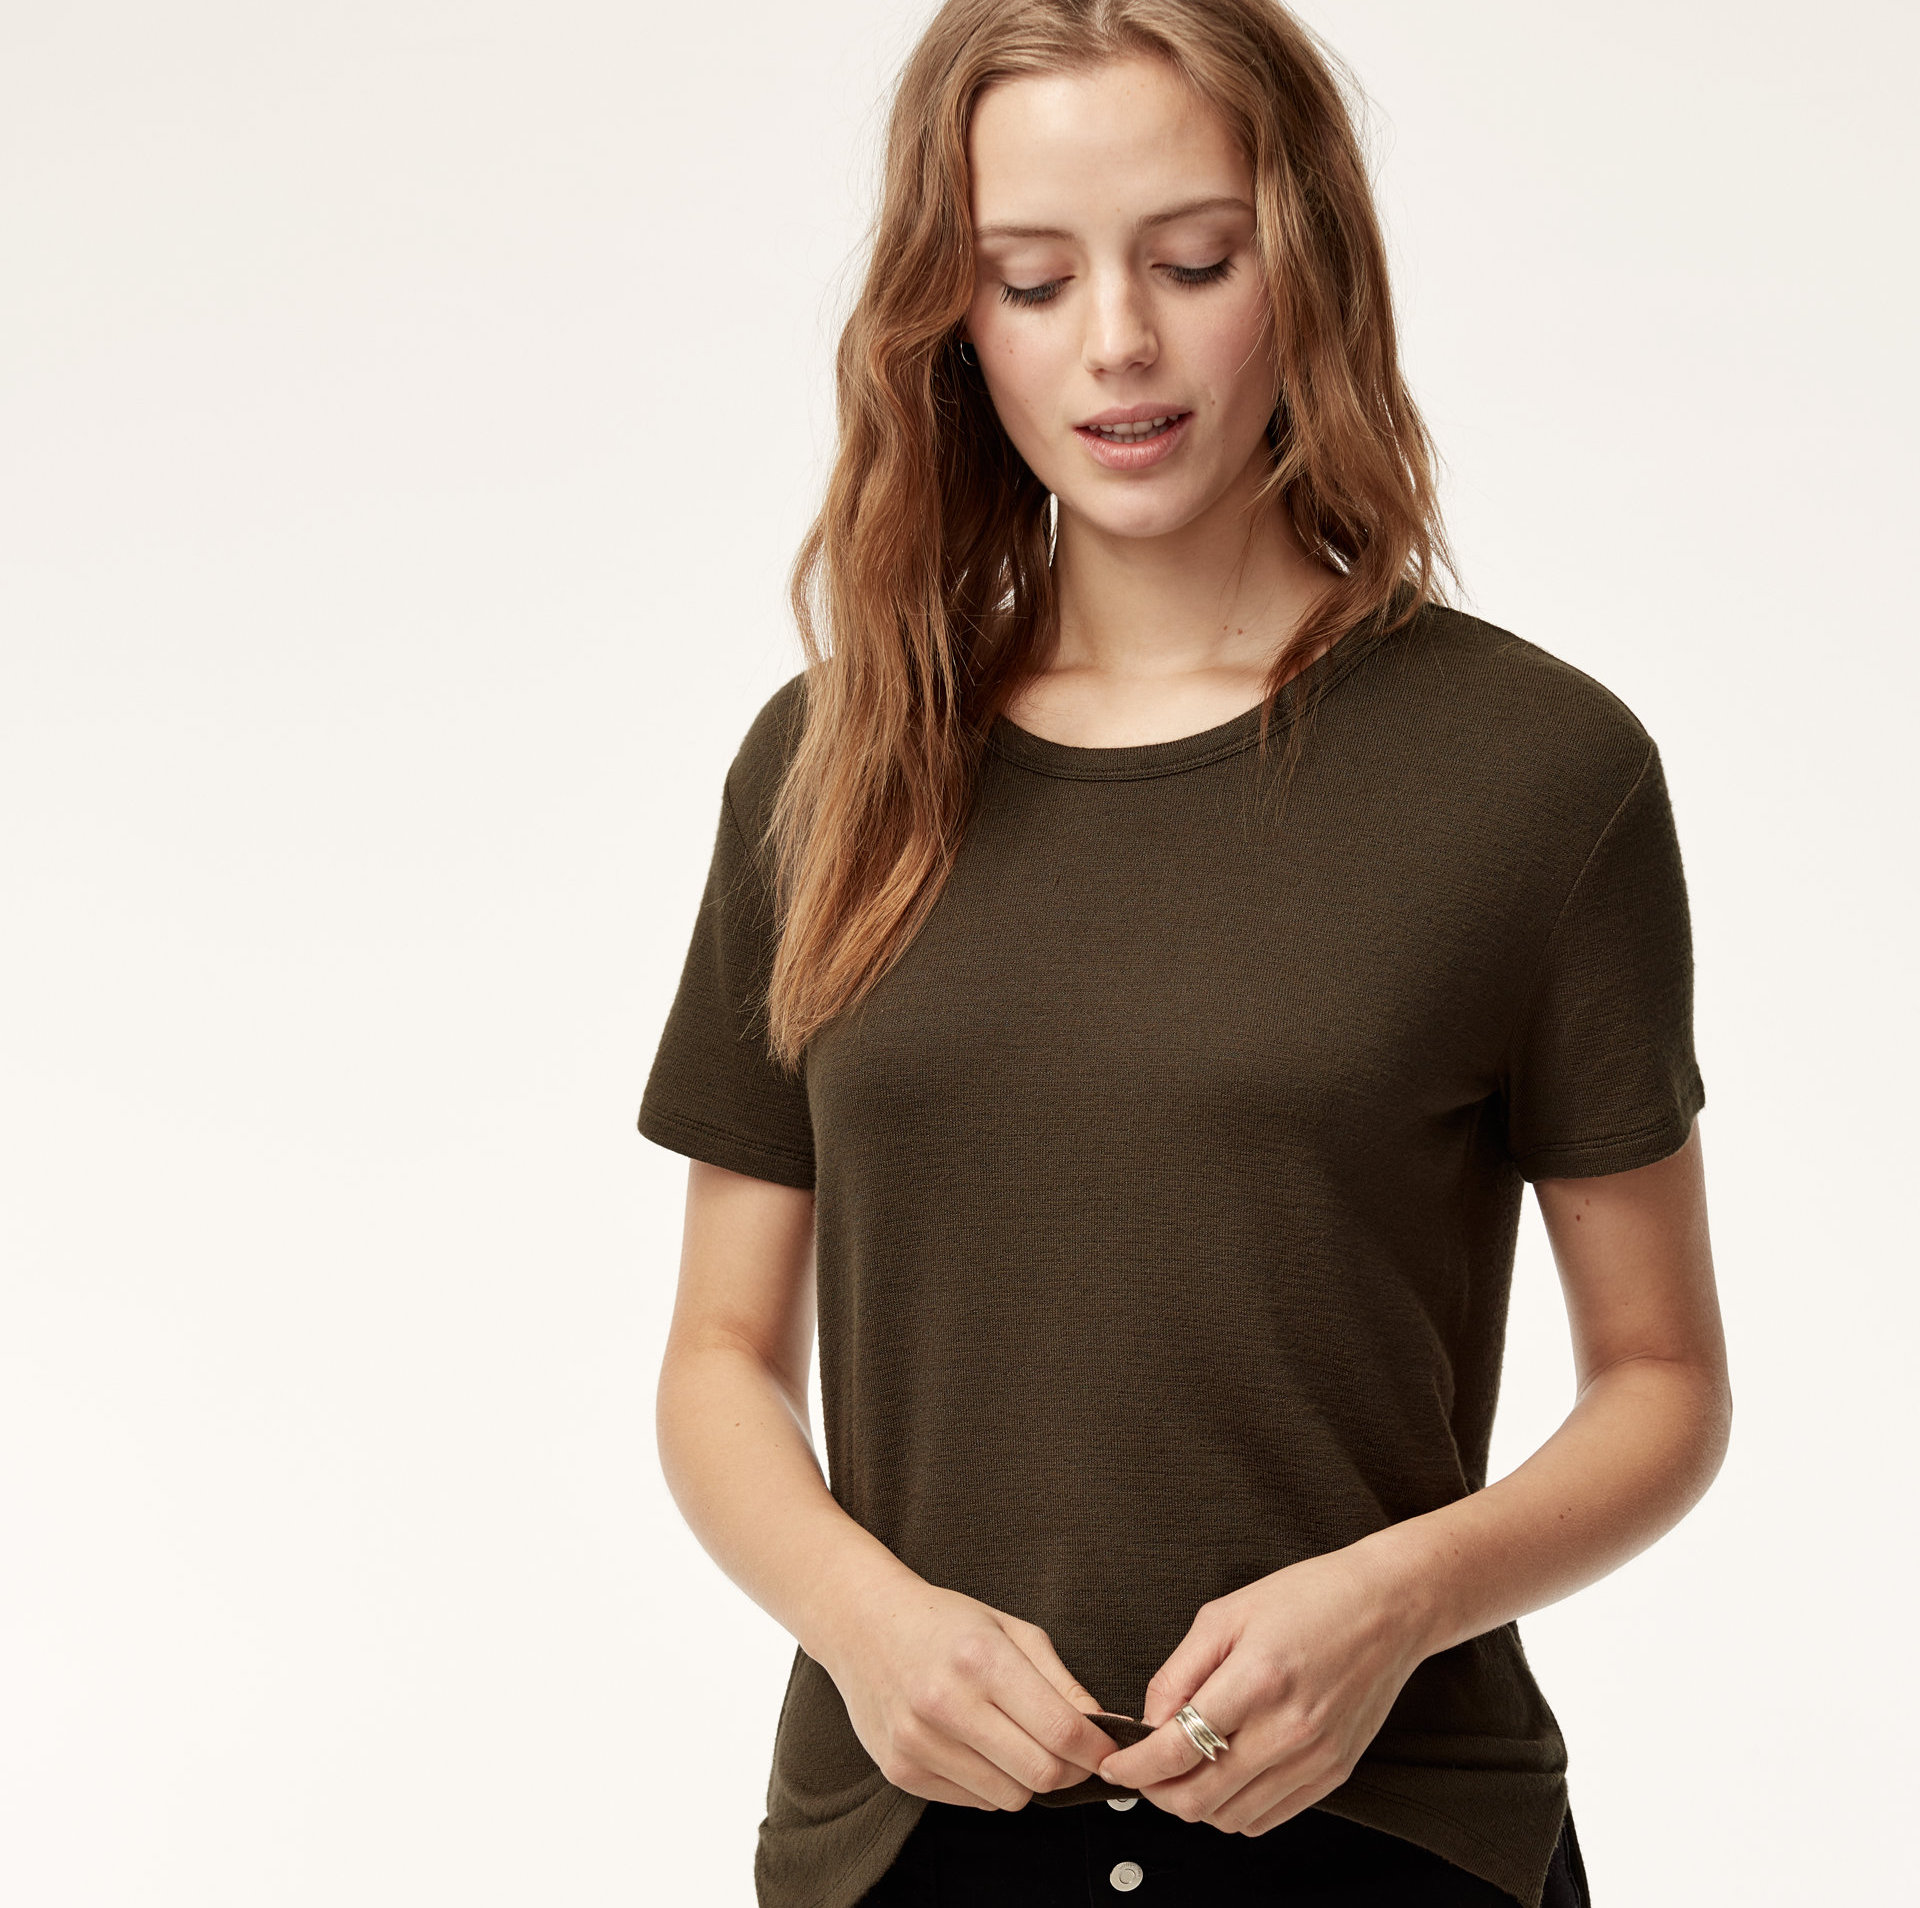 A model in a brown T-shirt